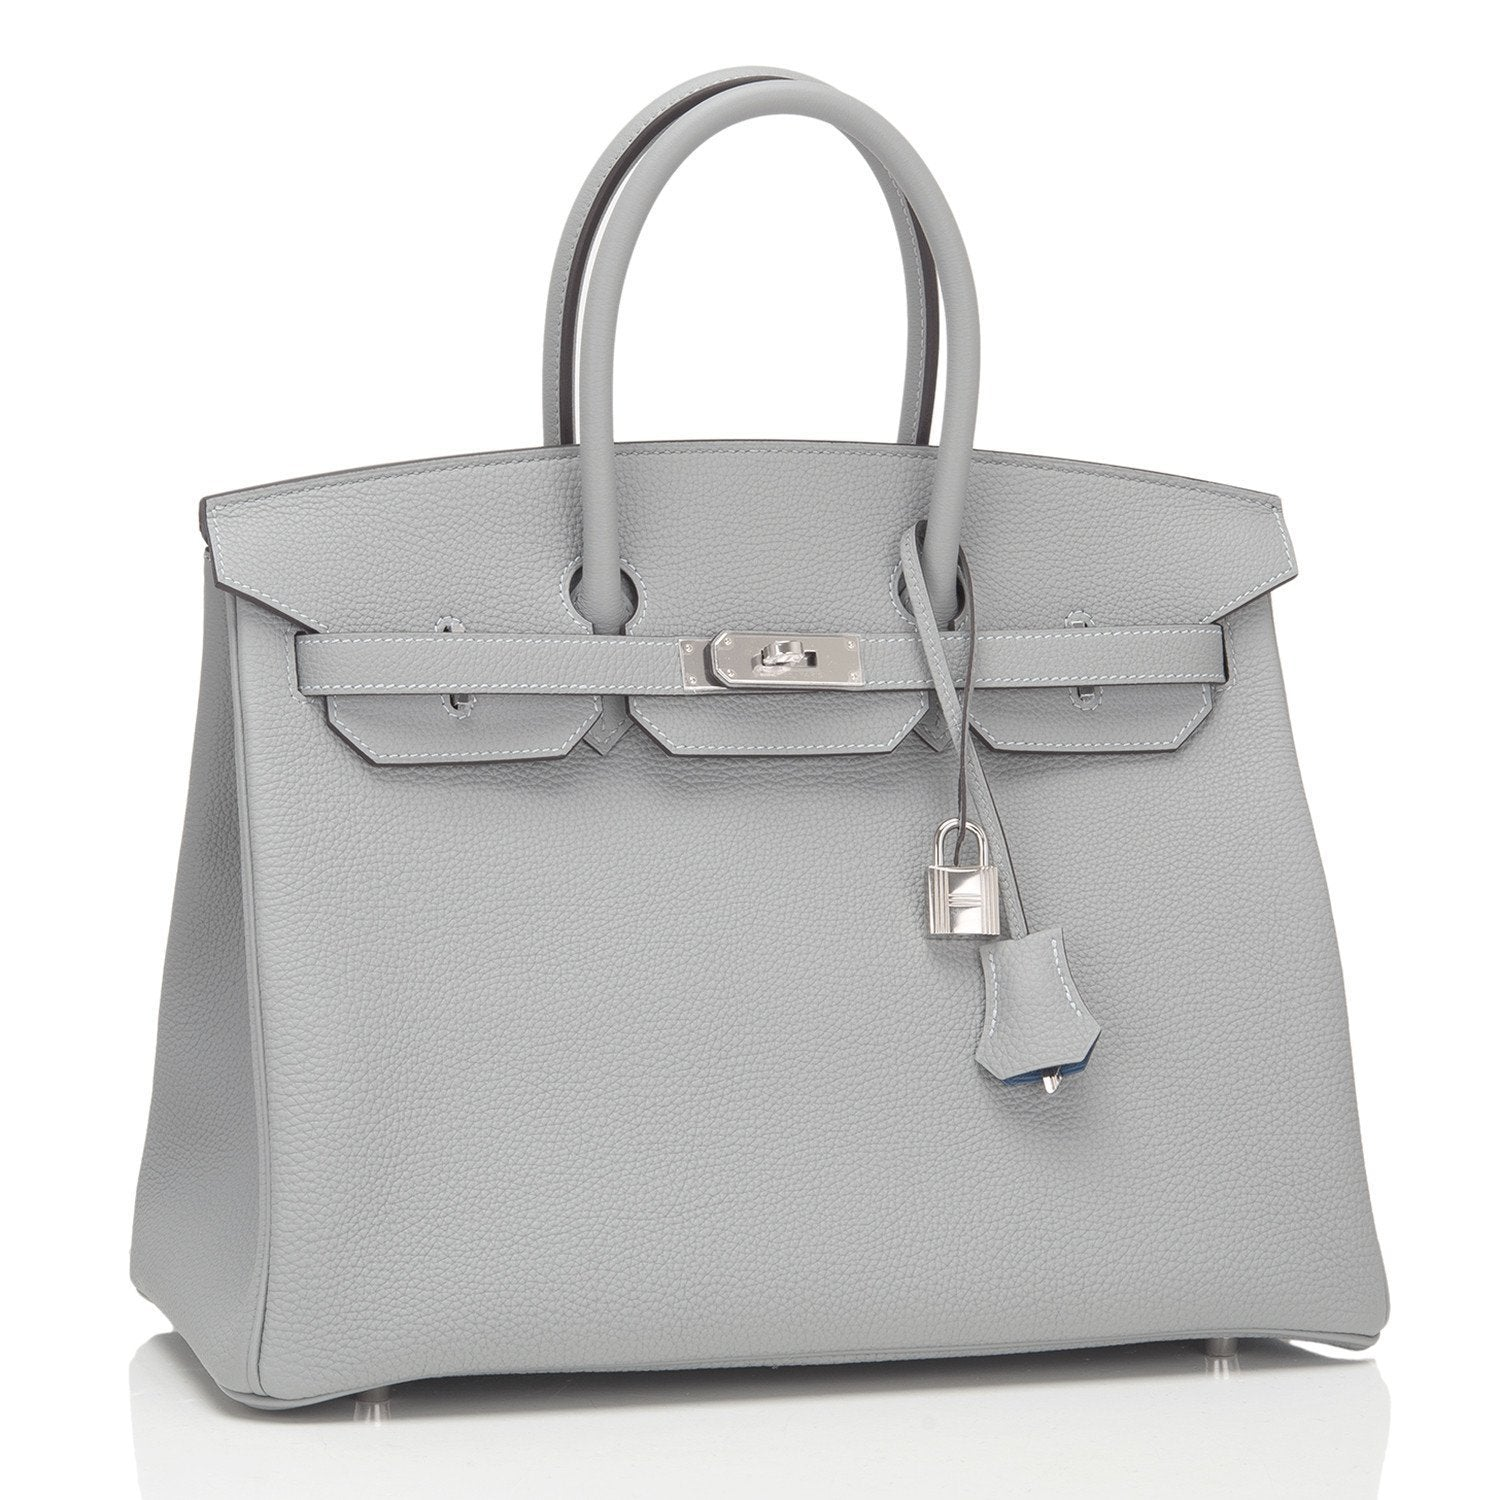 5a950aba9b8c Hermes Gris Mouette Verso Togo Birkin 35m PHW – Madison Avenue Couture